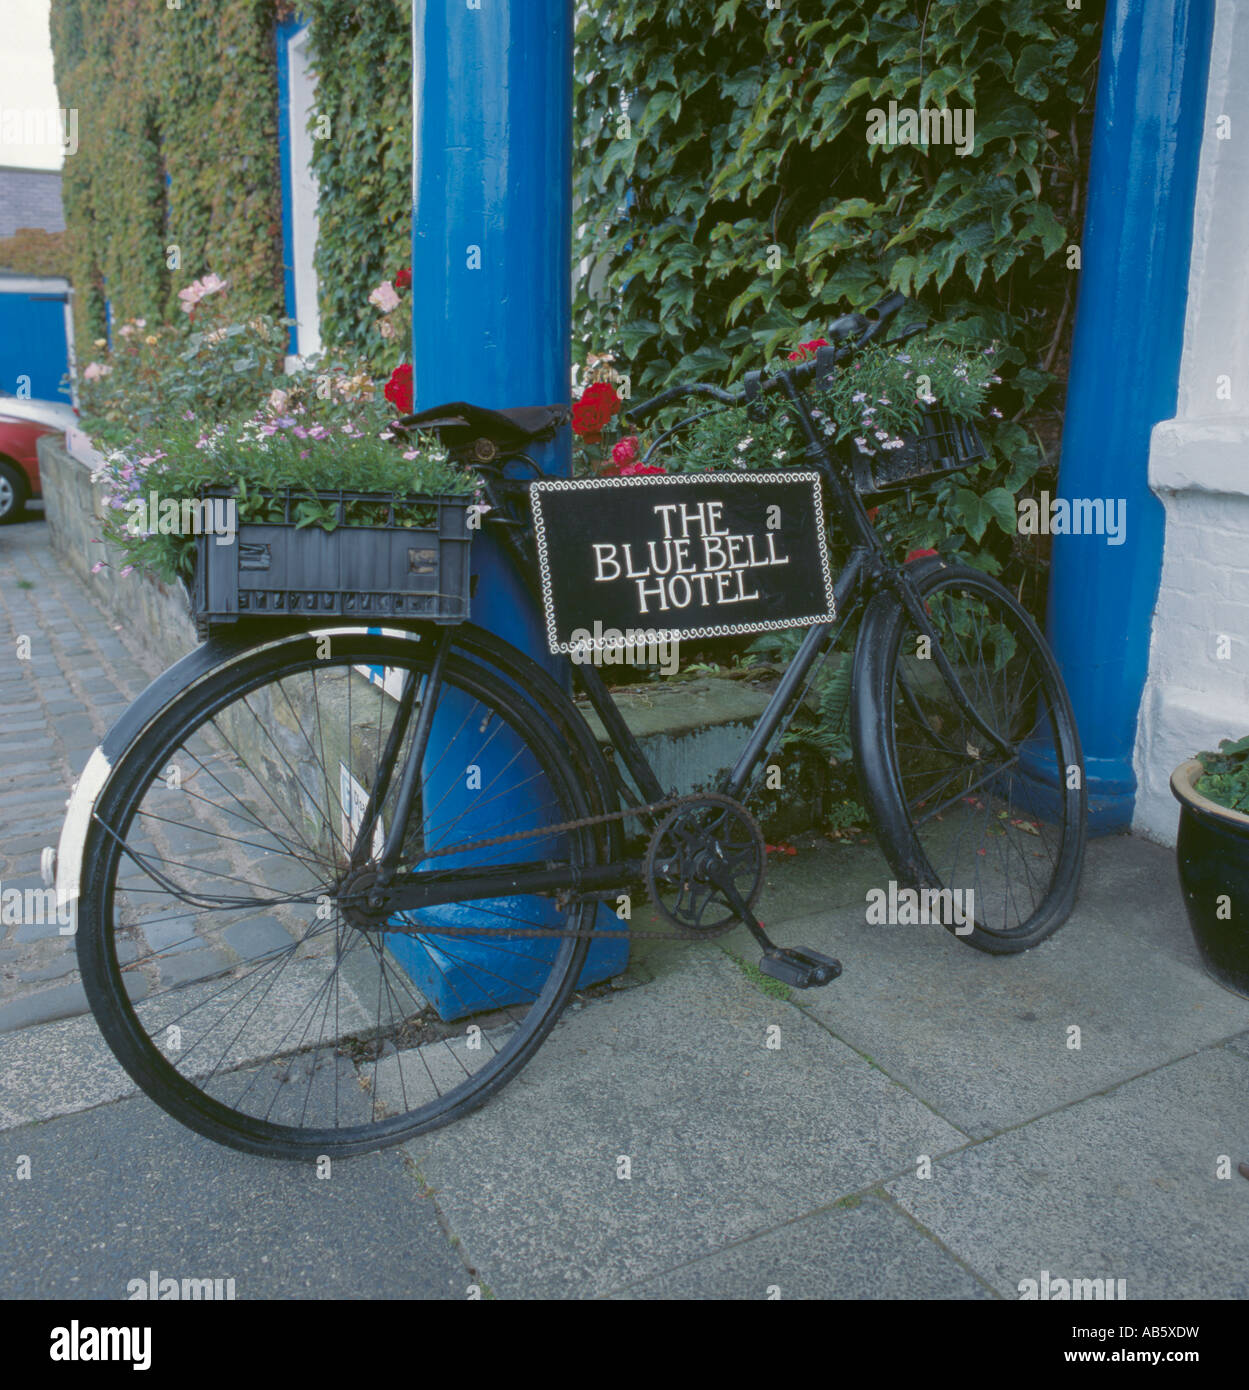 Old bicycle with sign and flower box milk bottle crates, Blue Bell Hotel, Belford, Northumberland, England, UK. - Stock Image